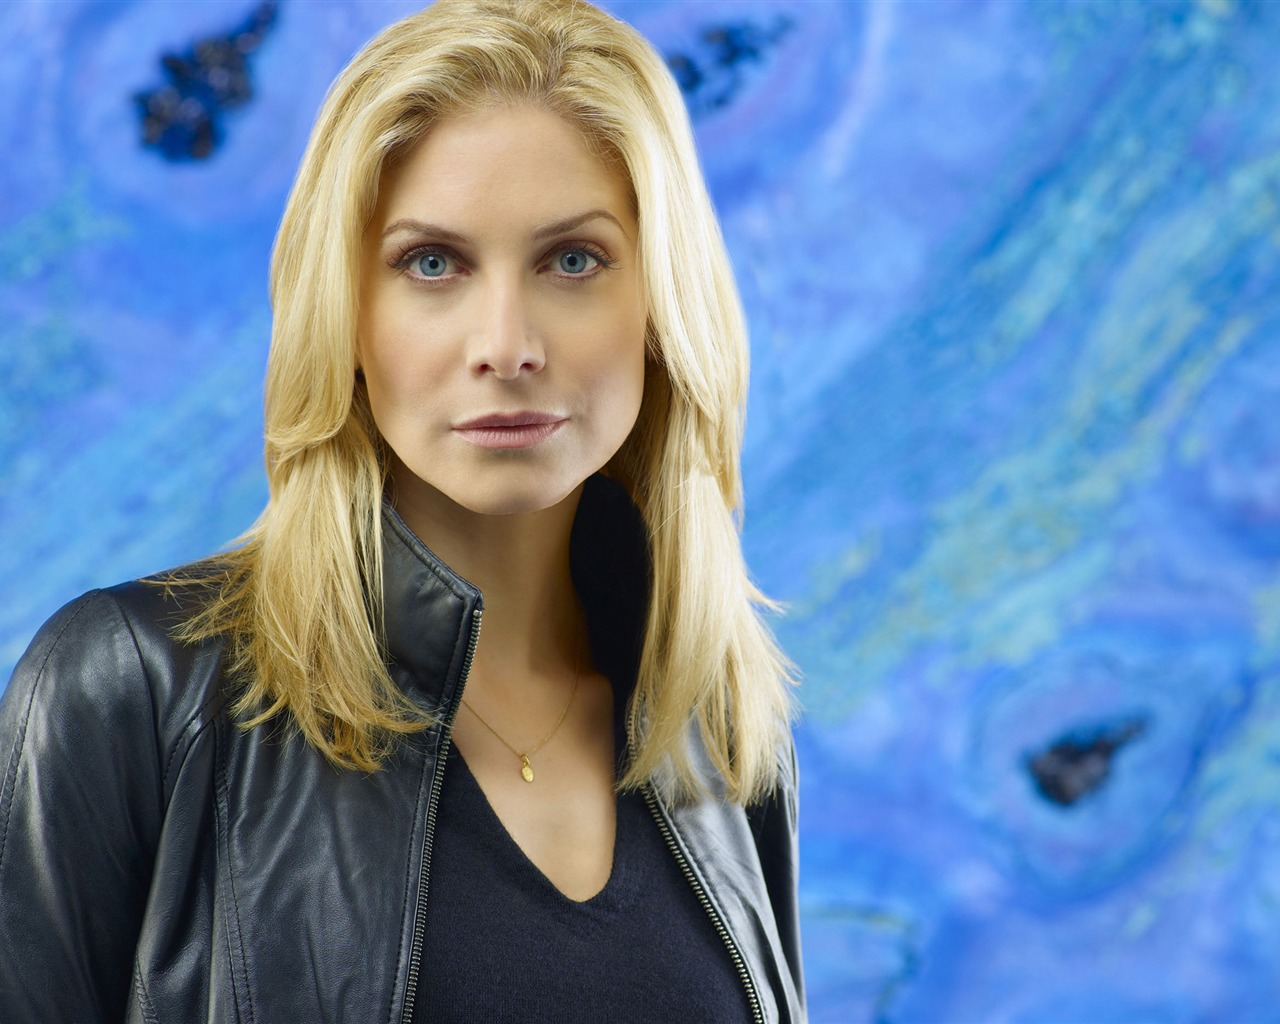 Elizabeth Mitchell #015 - 1280x1024 Wallpapers Pictures Photos Images